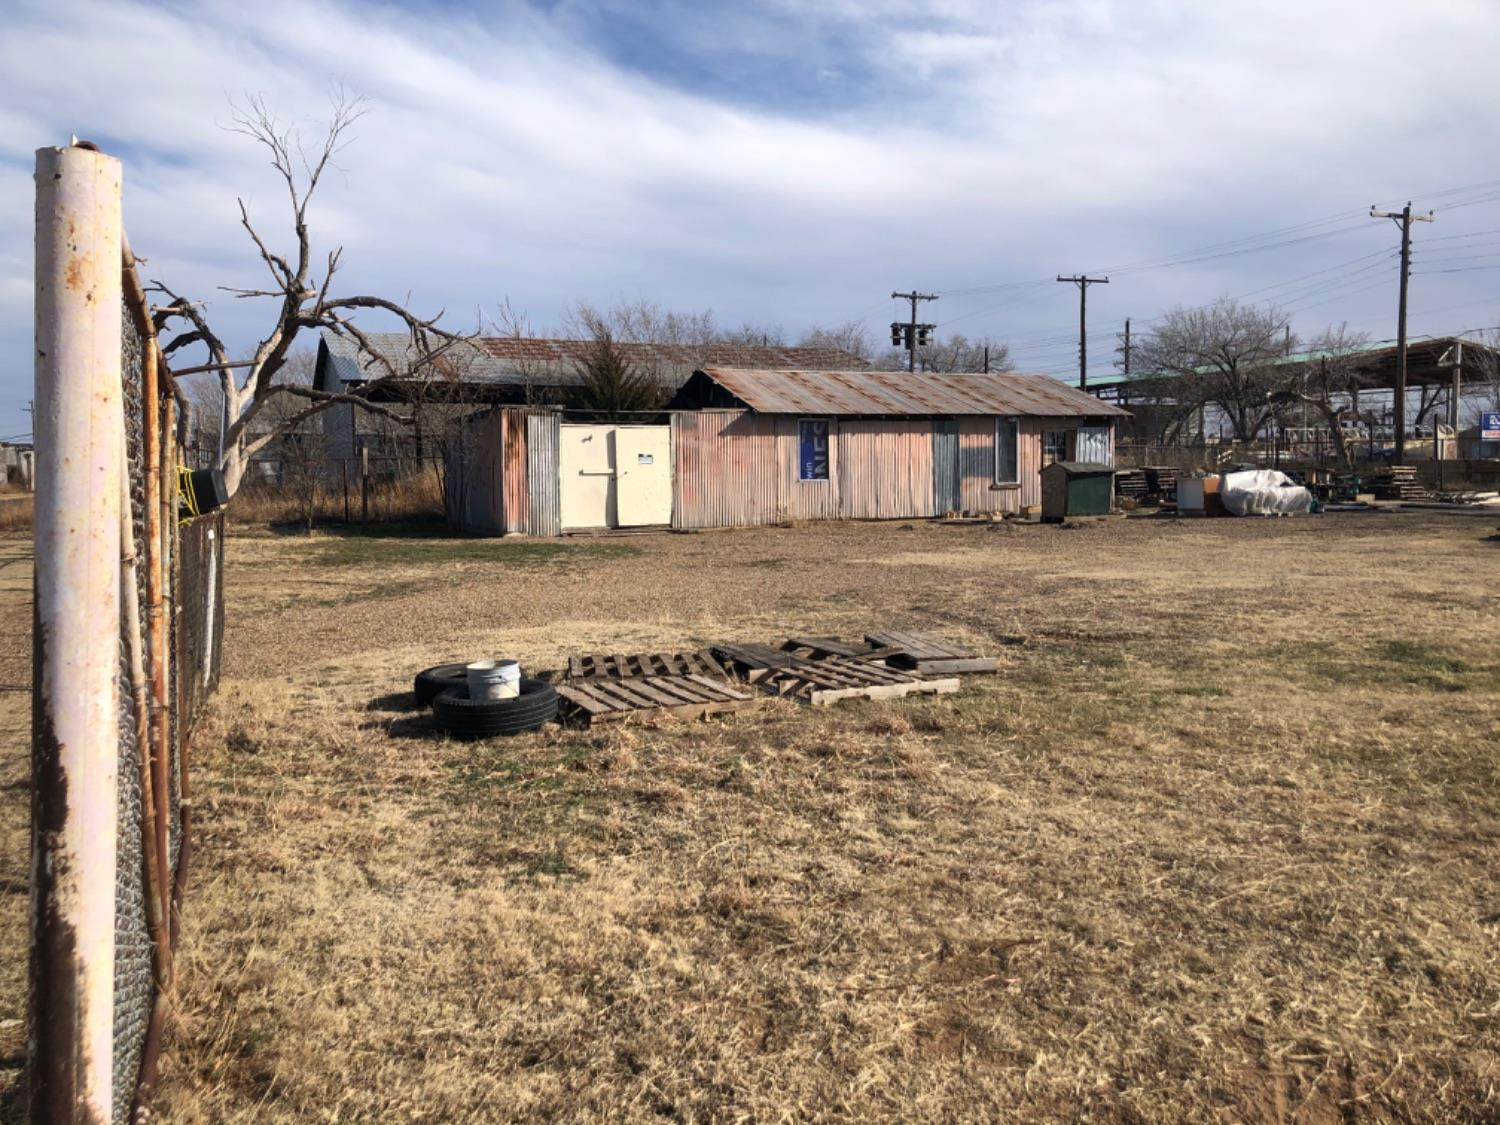 Two lots (12,000 sq ft, .2755 acres) on 29th St between I27 and Ave L. Great location for your business. Seller will removed current structure and place a 1200-1400 sq ft building on the property for an additional $25,000 with acceptable offer.